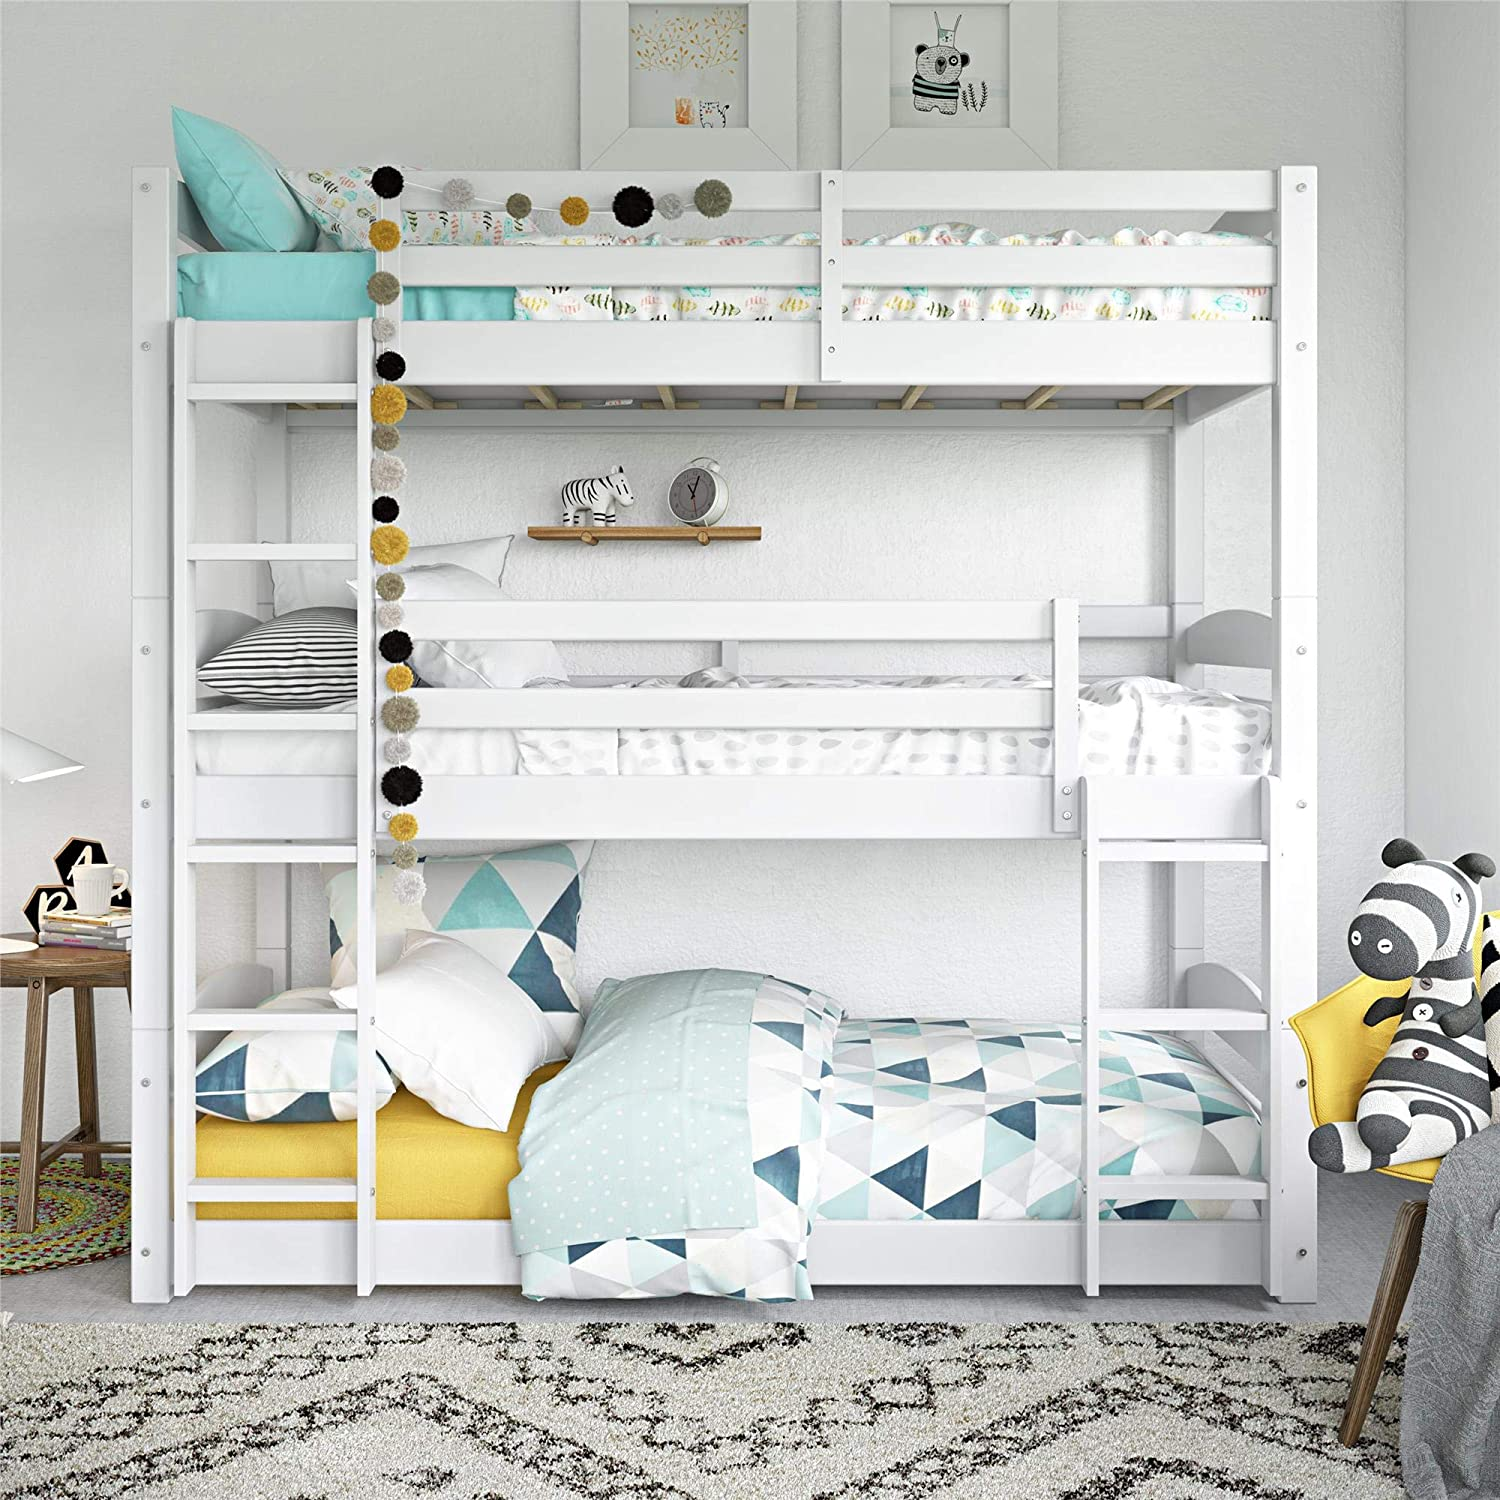 27 Bunk Beds That Make The Most Of Your Space